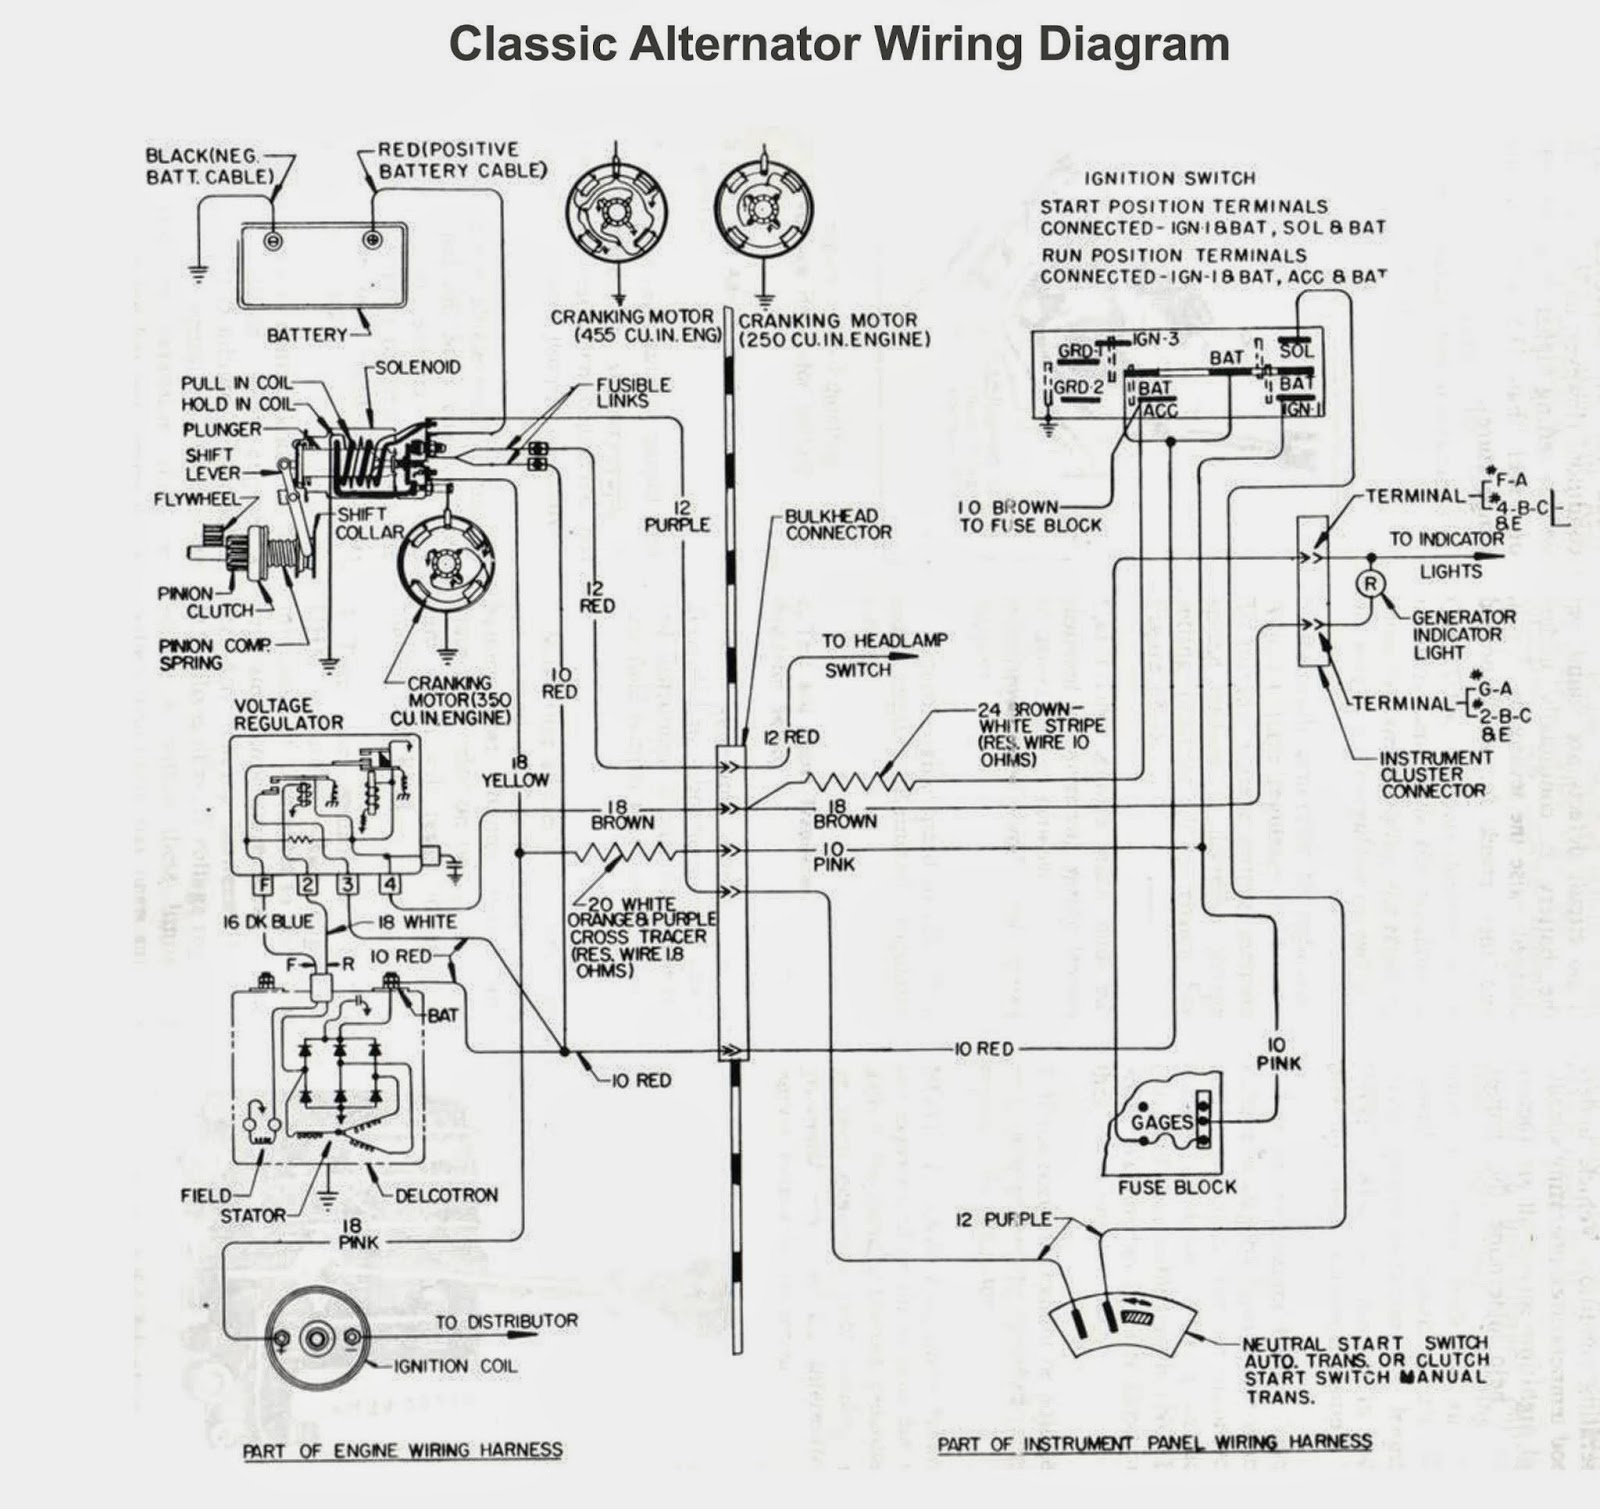 Untitled 1 july 2014 electrical winding wiring diagrams ac generator wiring schematic at panicattacktreatment.co